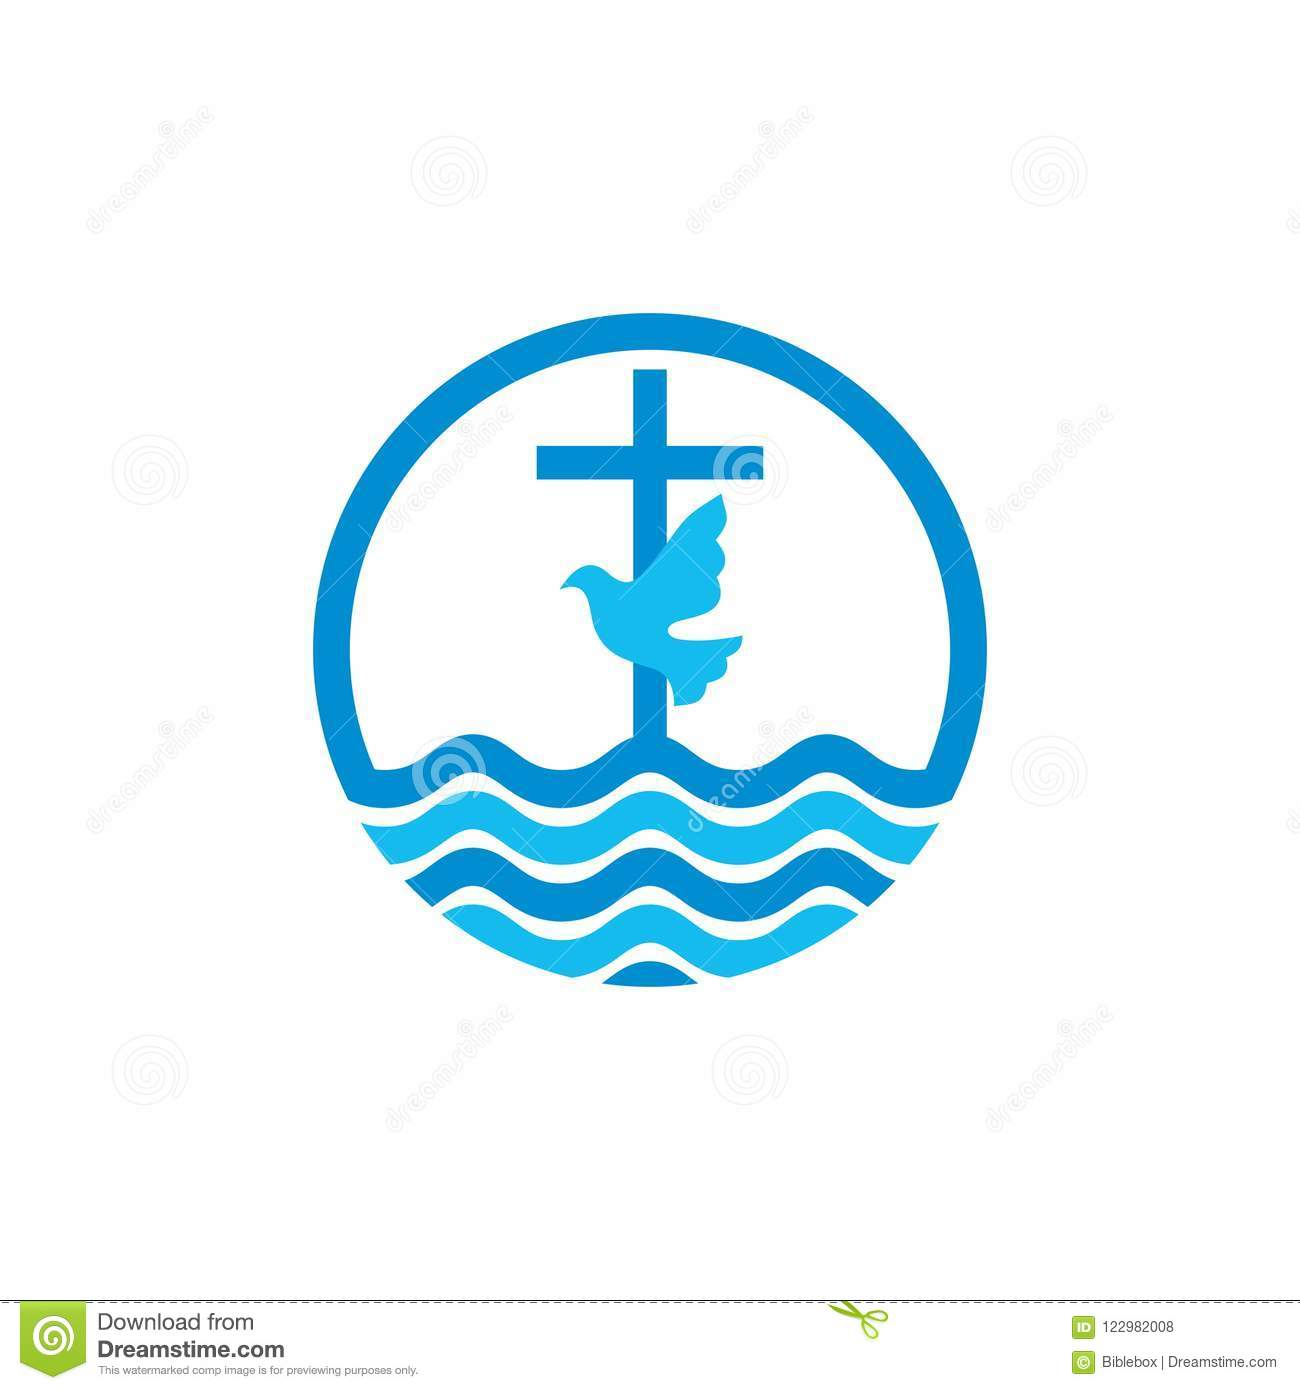 Logo Church Christian Symbols Cross And Dove Waves Jesus The